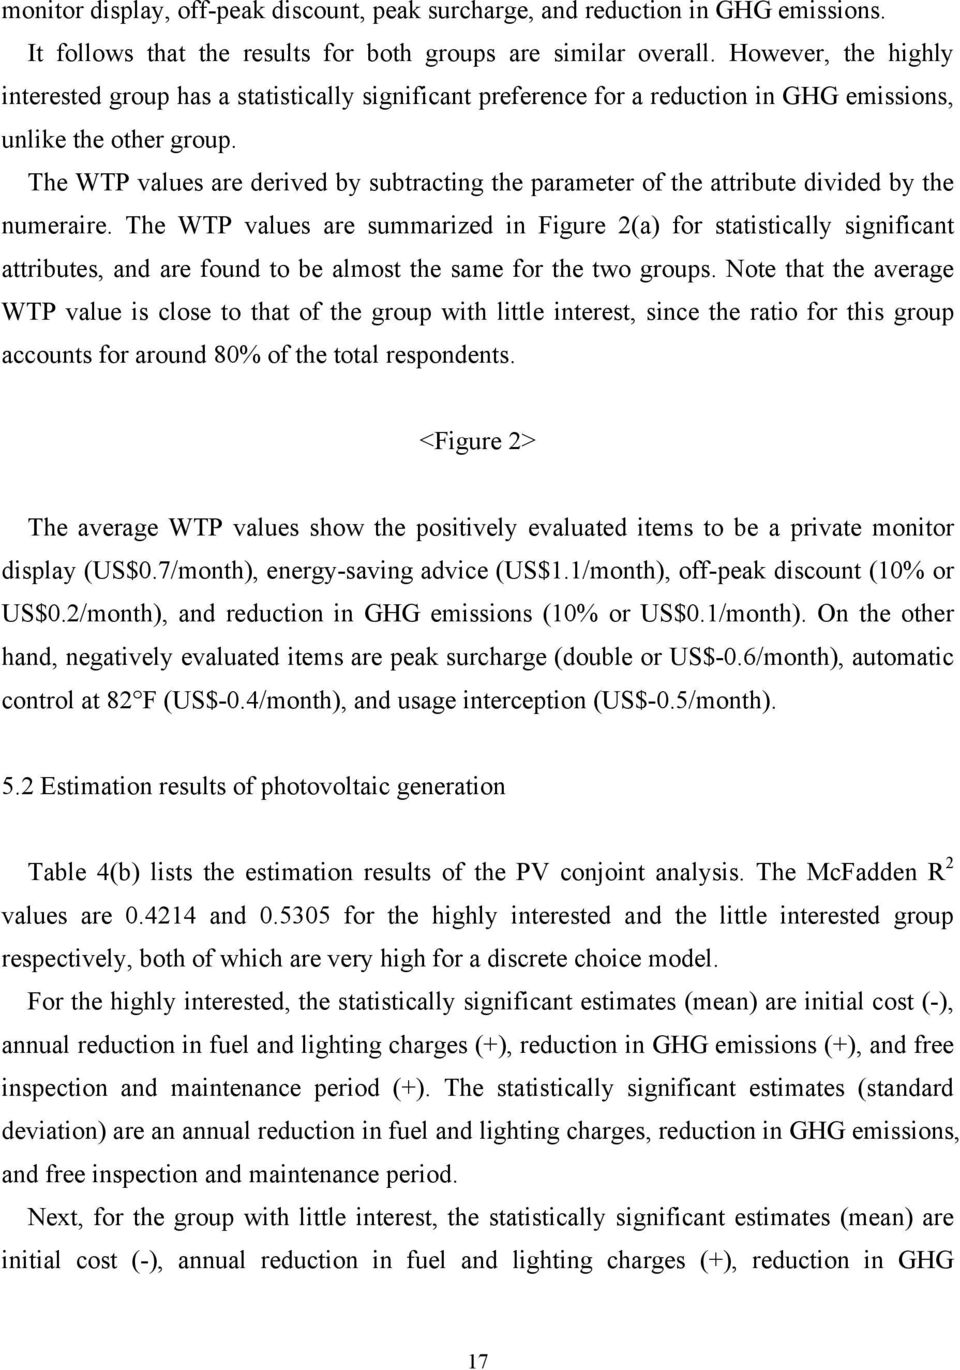 The WTP values are derived by subtracting the parameter of the attribute divided by the numeraire.